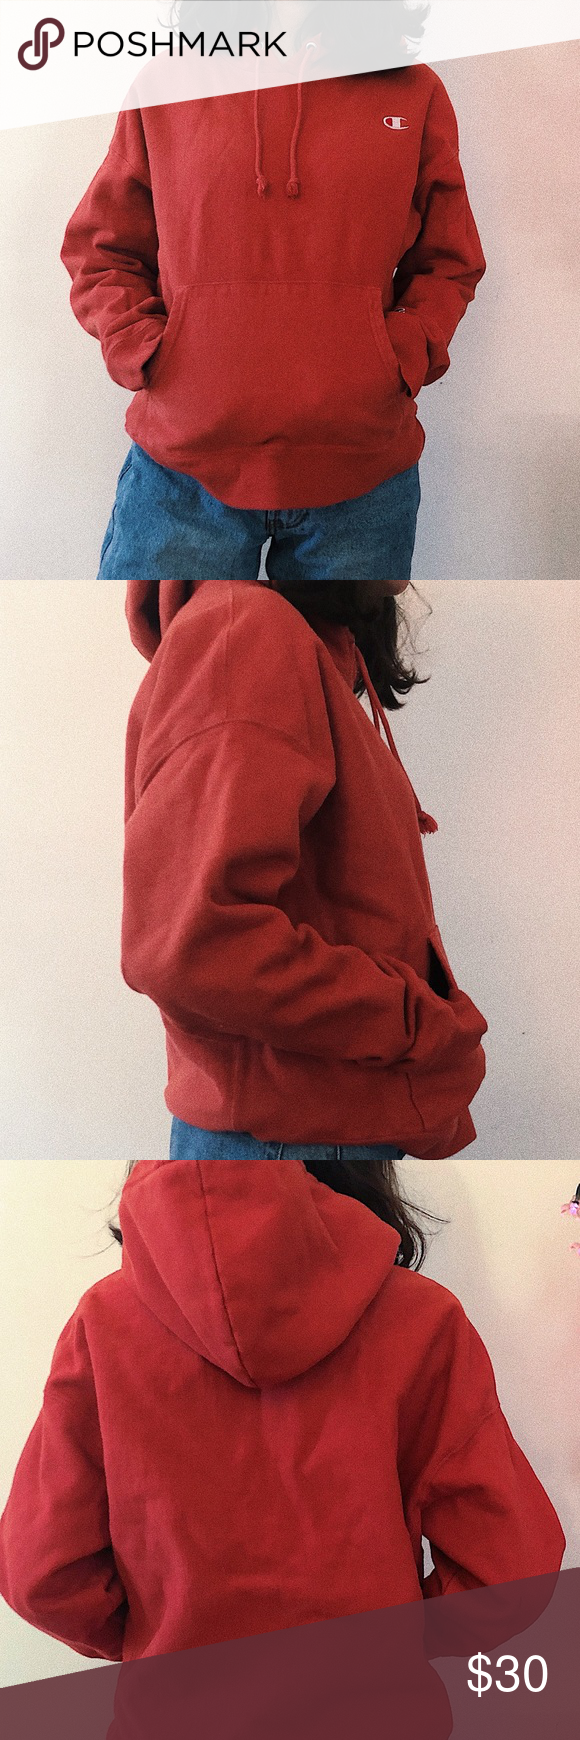 ☆ red CHAMPION hoodie ☆ Small, red/pink hoodie, CHAMPION Champion Other #championhoodie